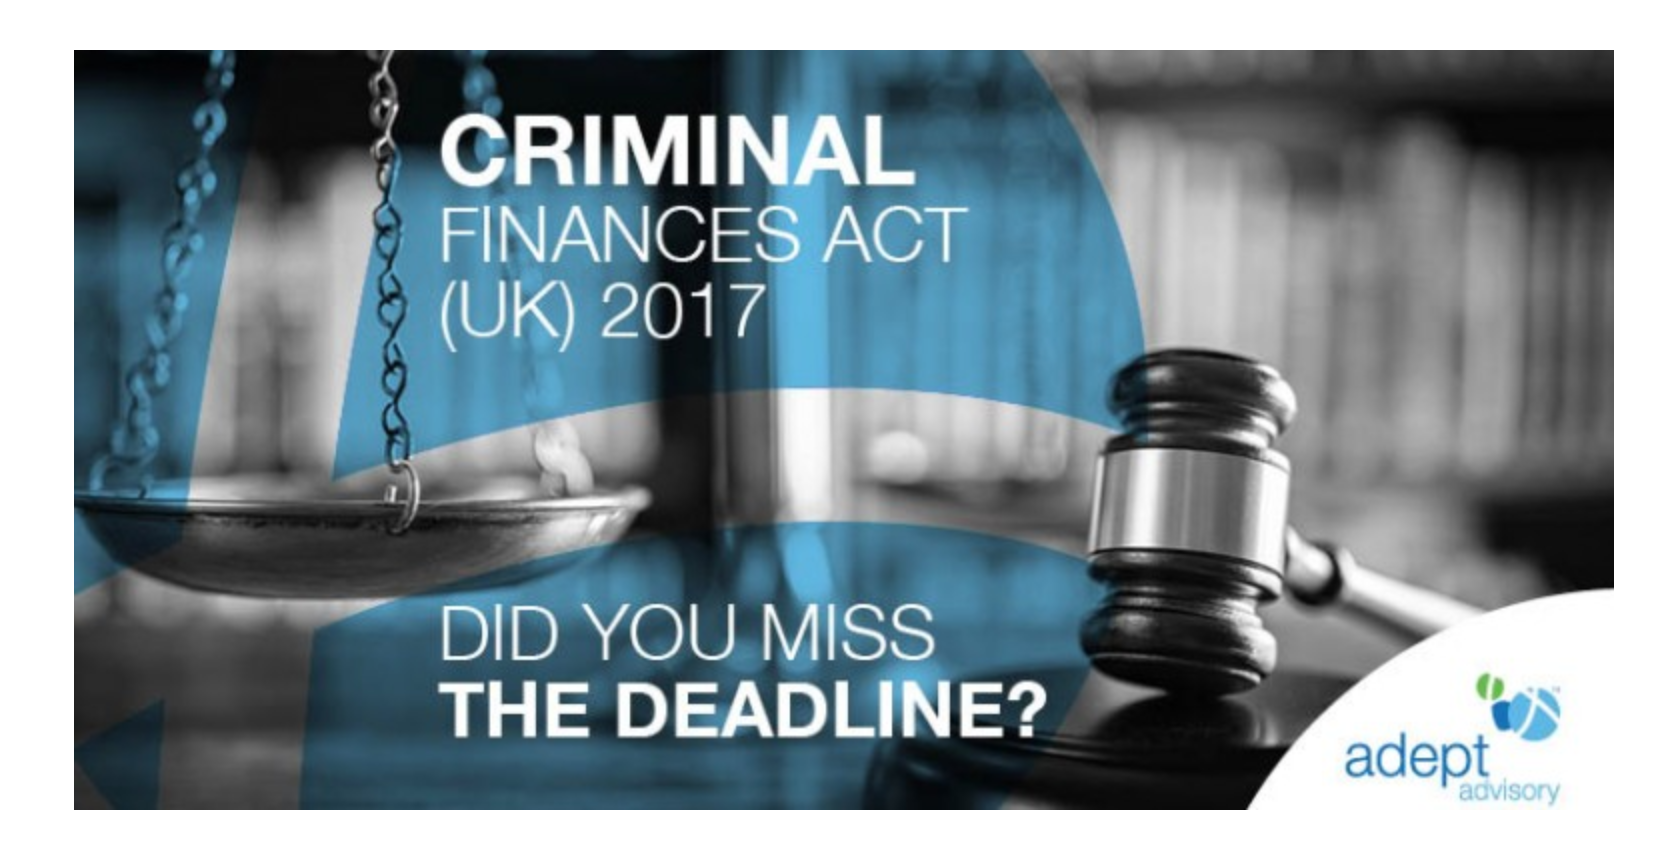 Criminal Finances Act (UK) 2017 – Did you miss the deadline?